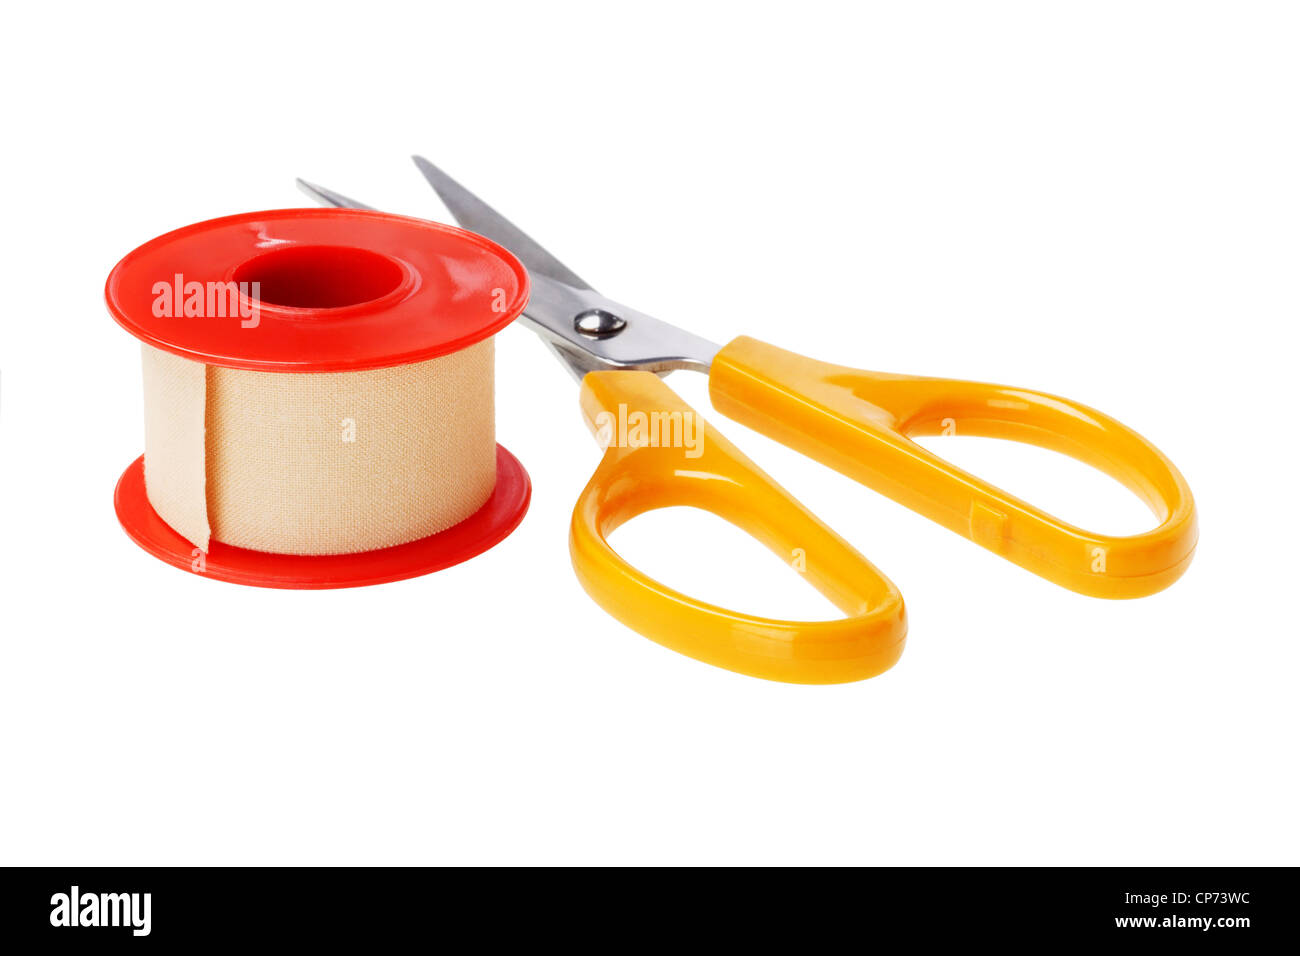 Roll of Medical Sticking Plaster and cutting scissors on White Background - Stock Image